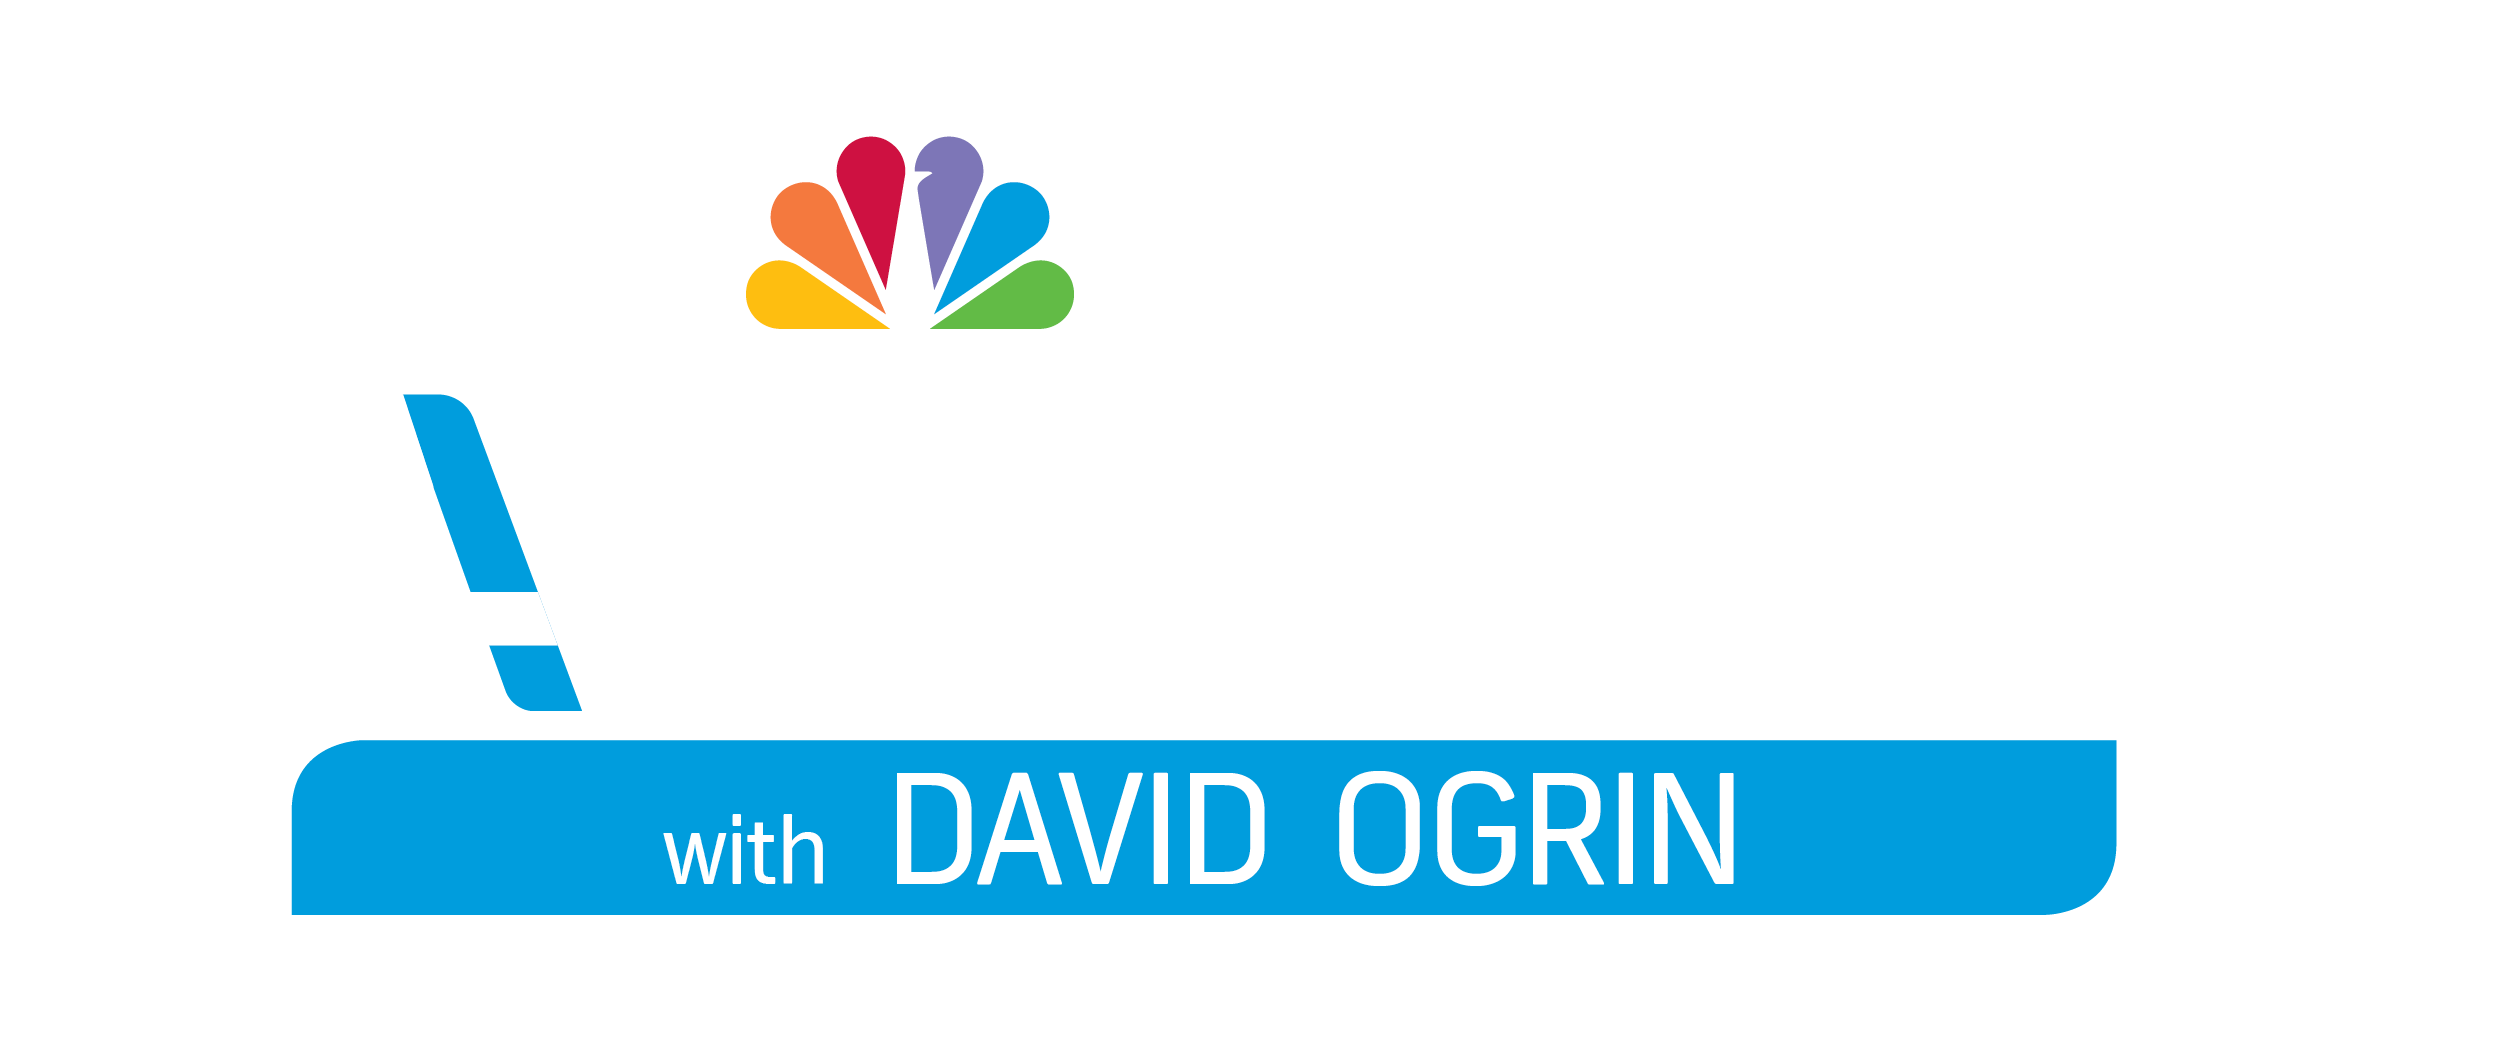 David Ogrin Golf